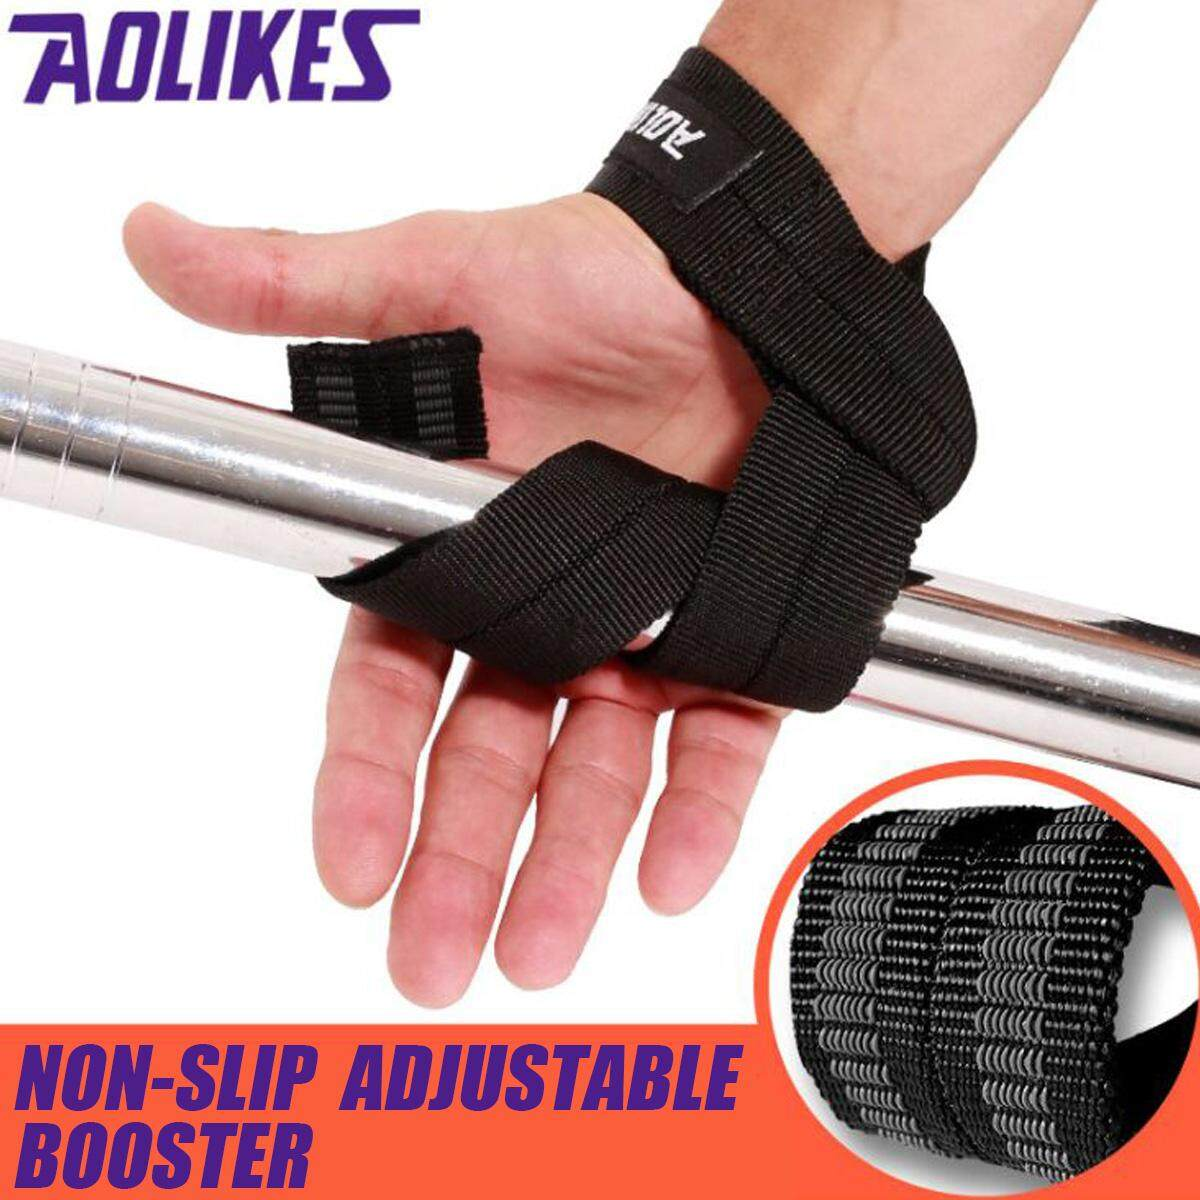 Weight Lifting Bar Grips Straps Wrist Support Gym Training Wraps Bangage Gloves -Black - Intl By Tomorr.